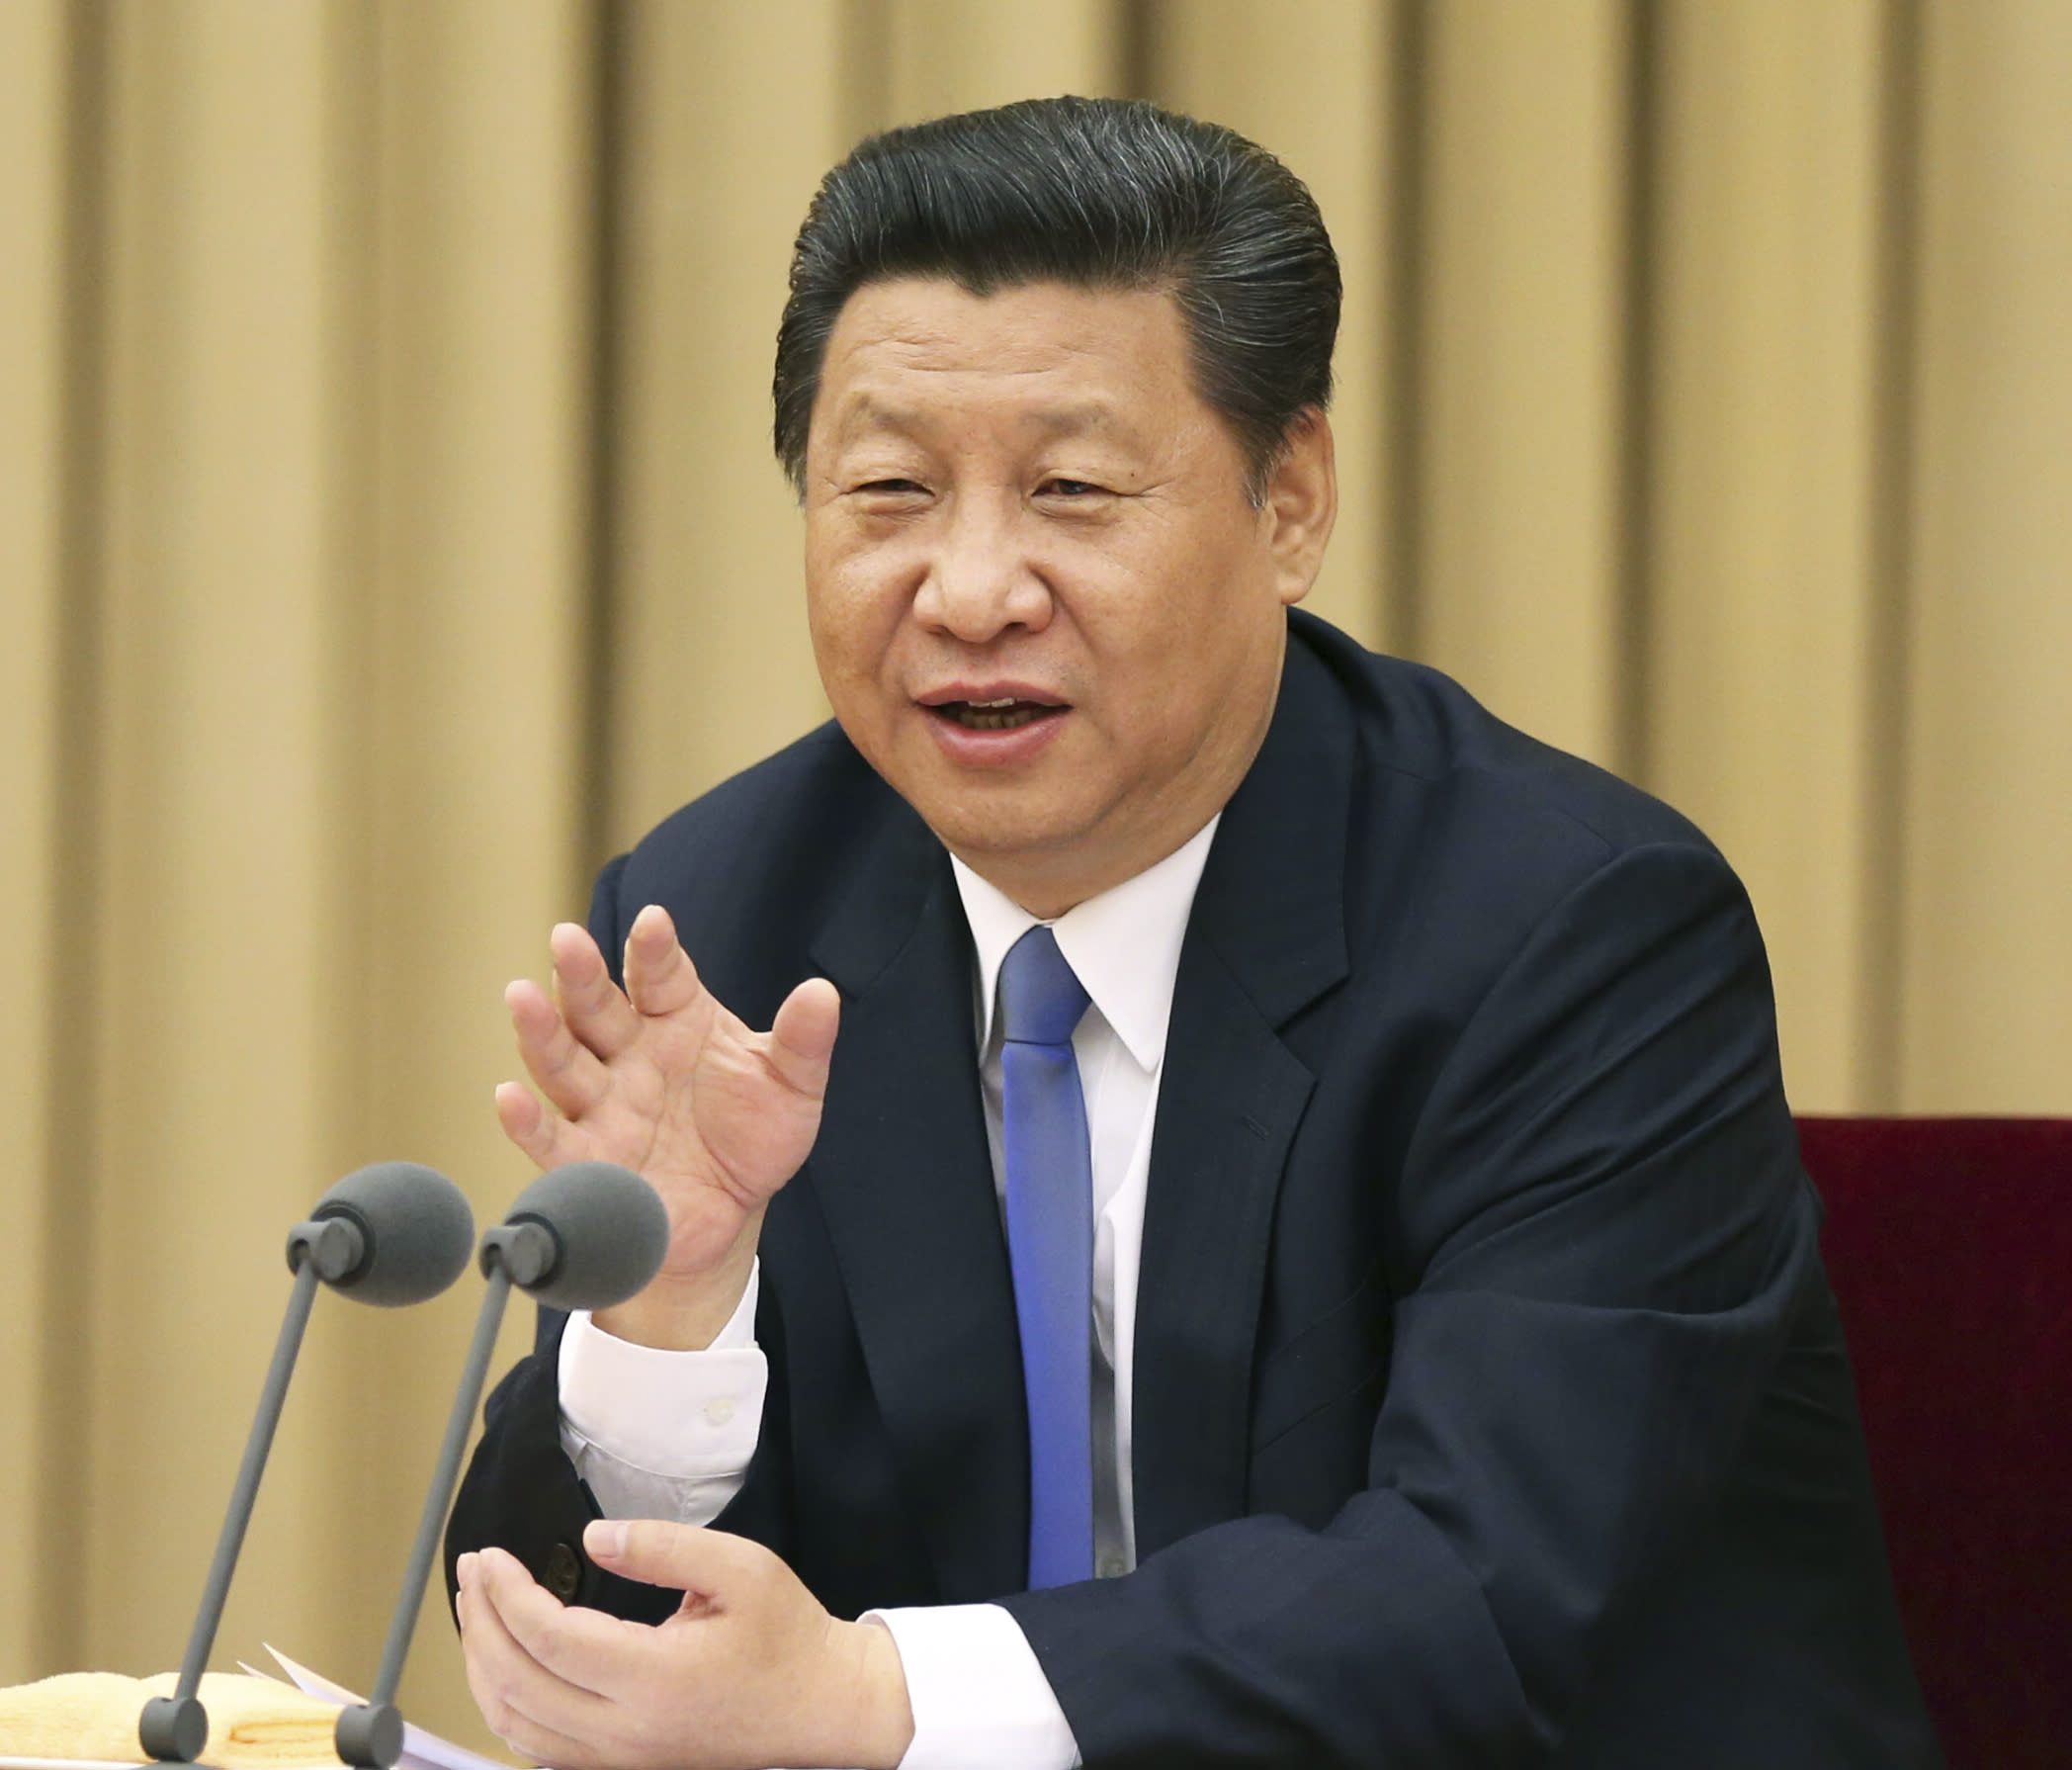 Chinese leader: Religions must be free of foreign influence